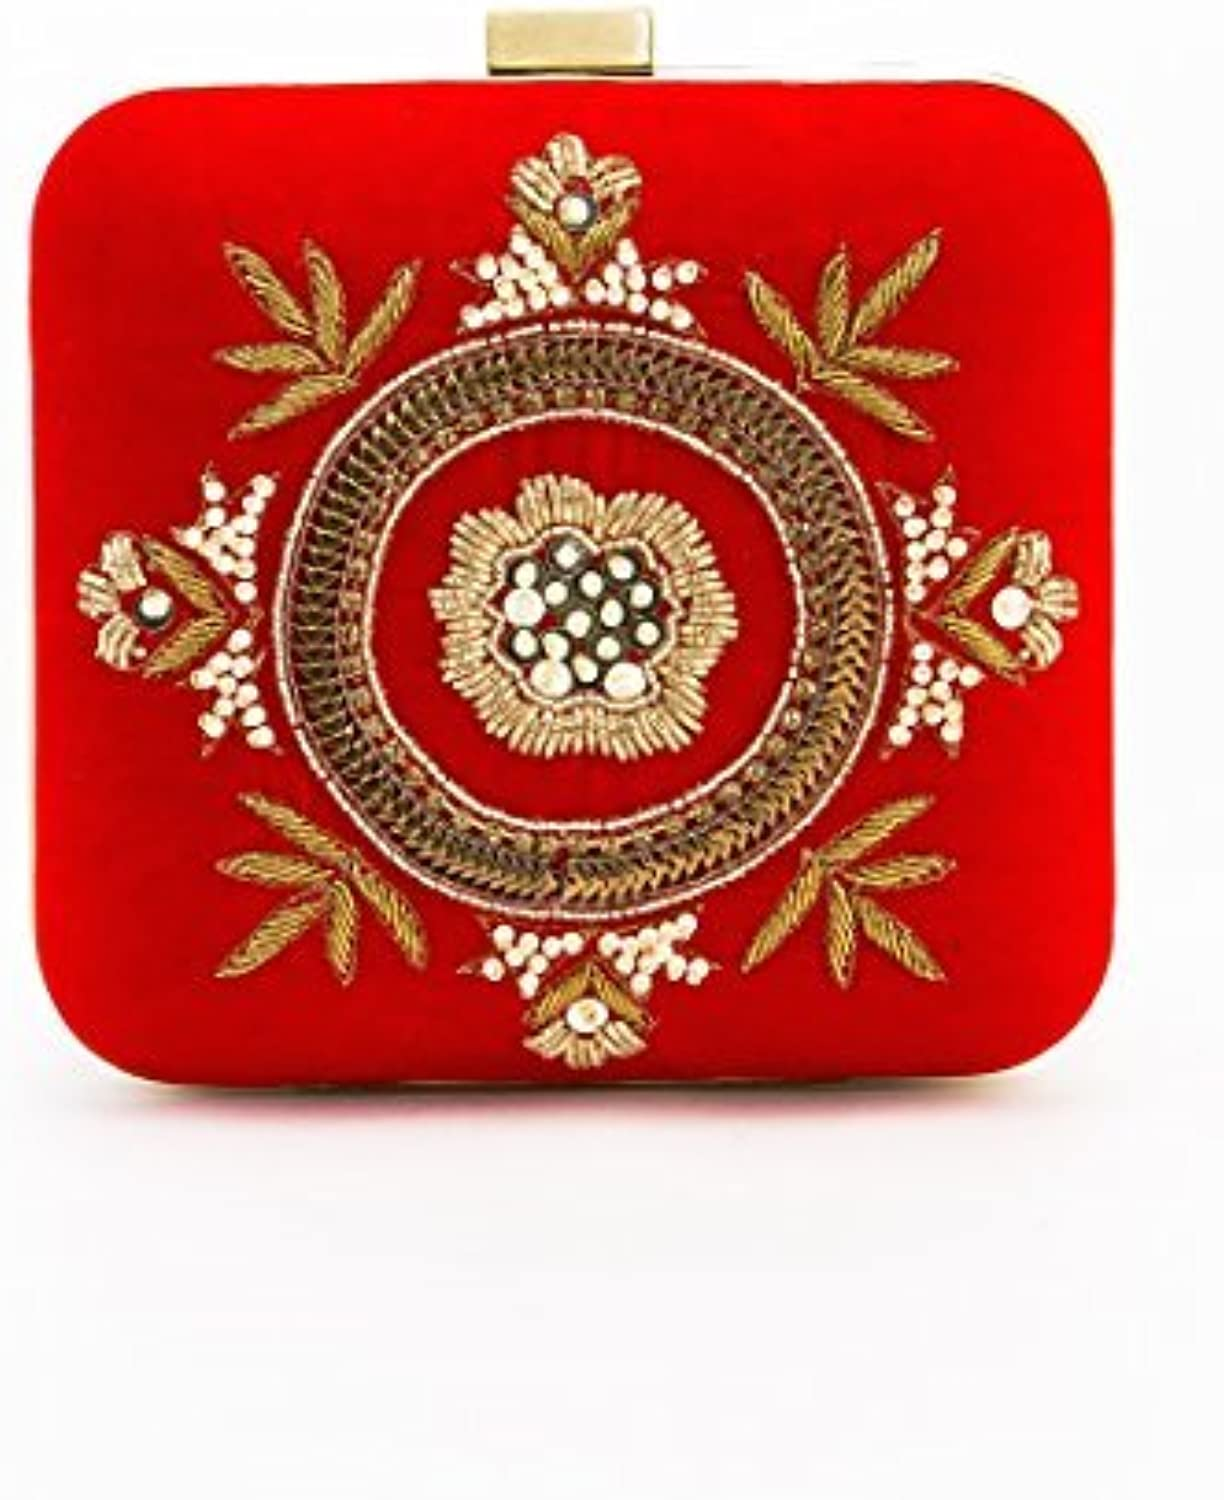 Beaded Red Velvet Clutch with Pearls and Floral Embroidery